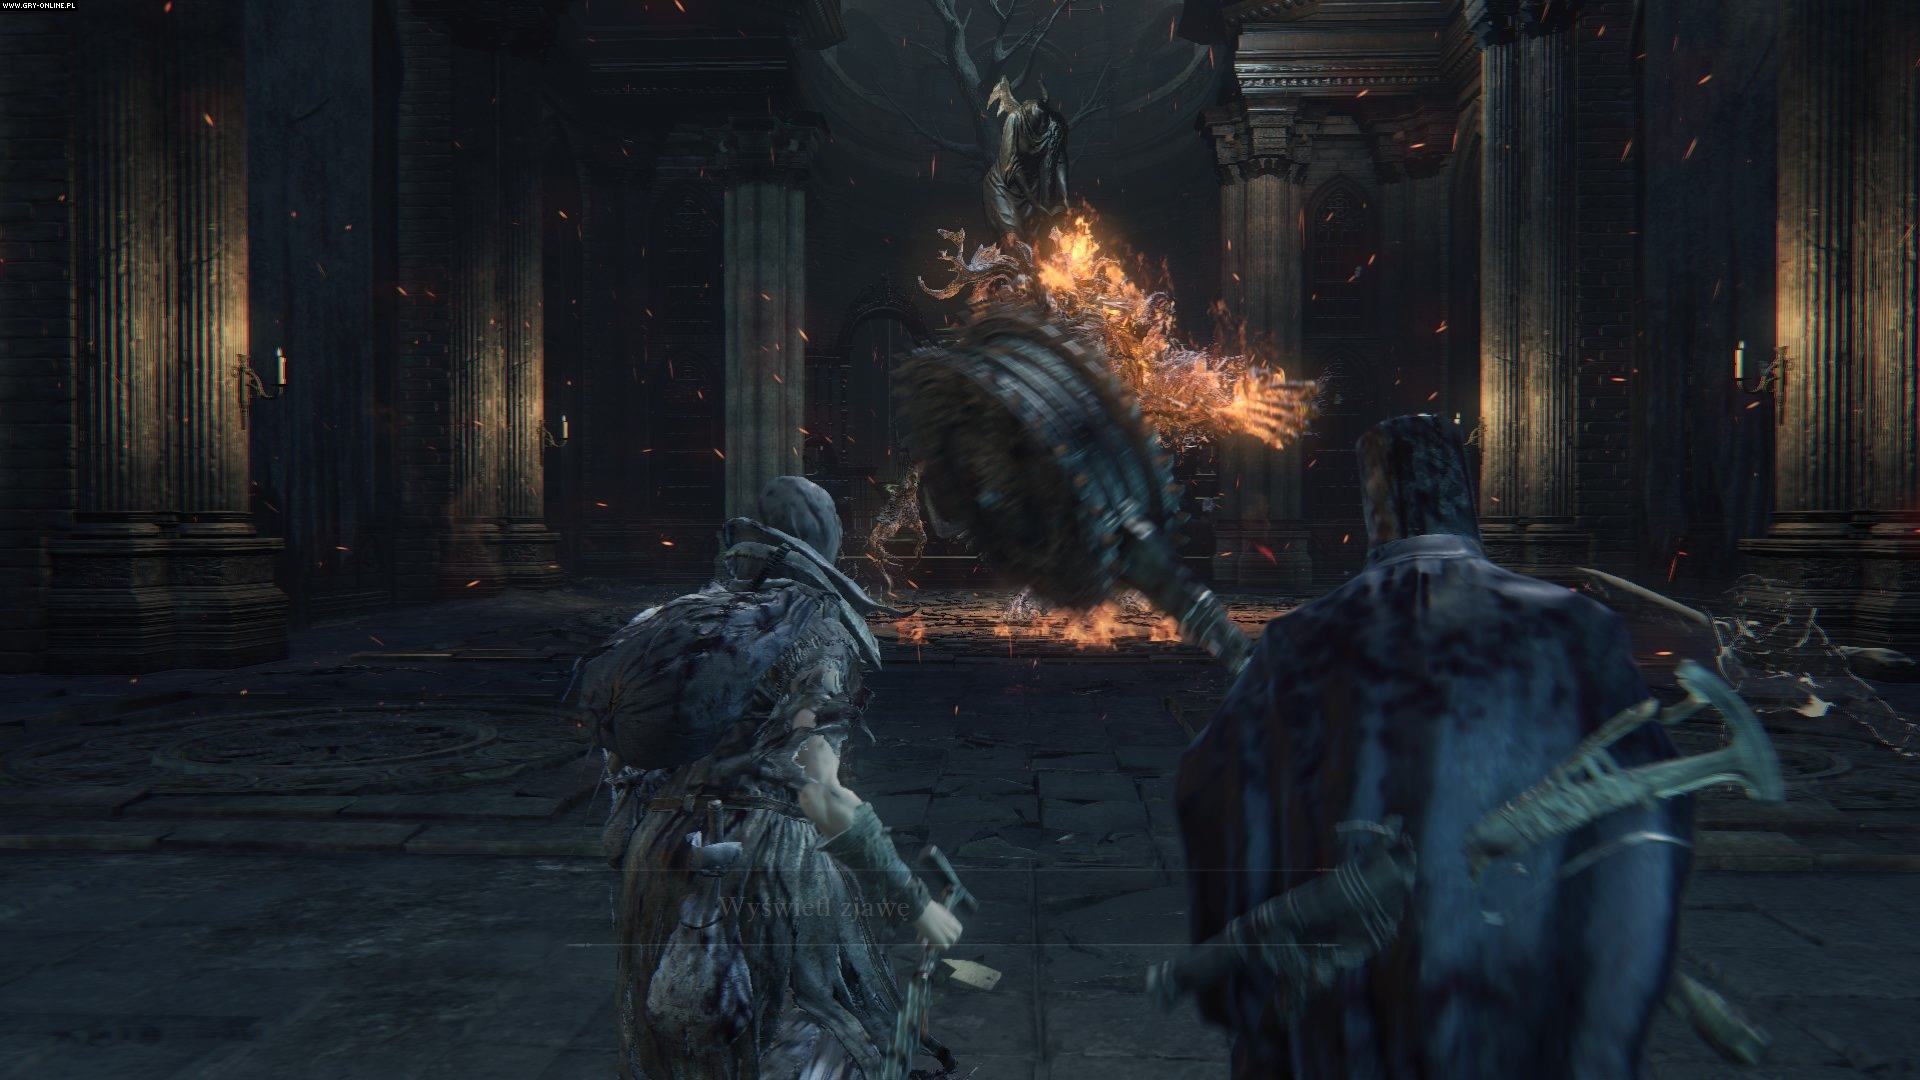 Bloodborne: The Old Hunters PS4 Gry Screen 3/50, FromSoftware, Sony Interactive Entertainment